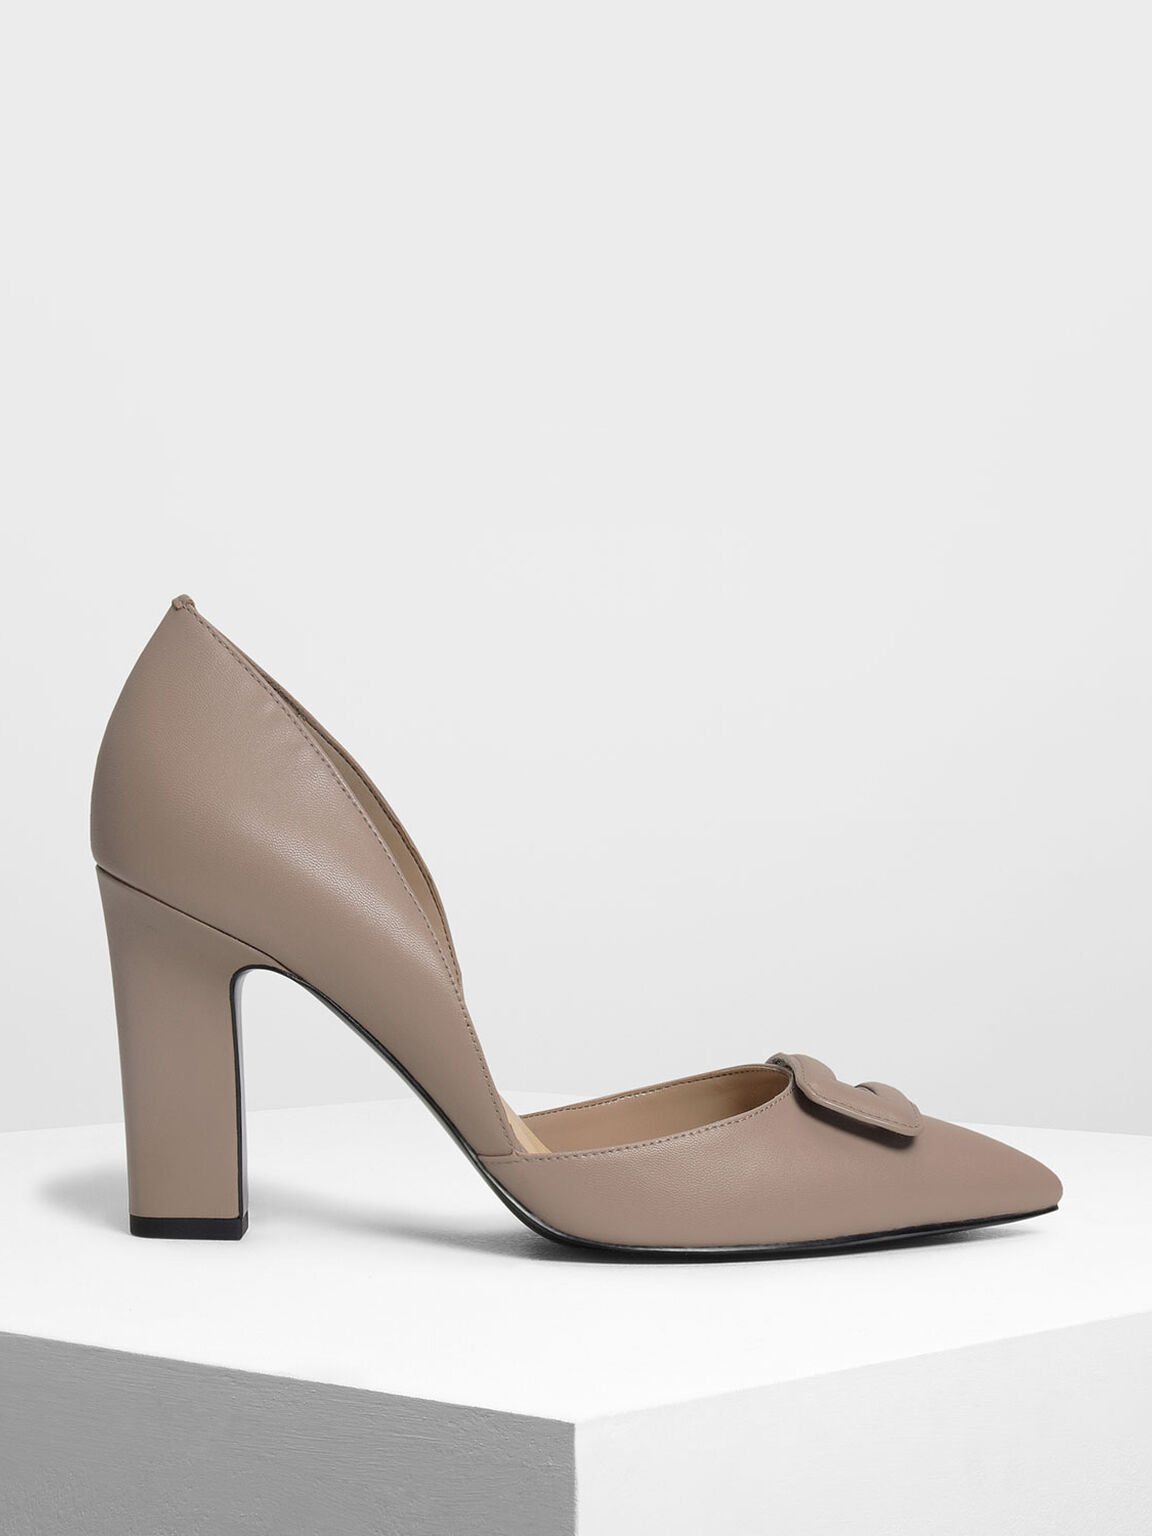 Wrapped Buckle Detail Pumps, Taupe, hi-res